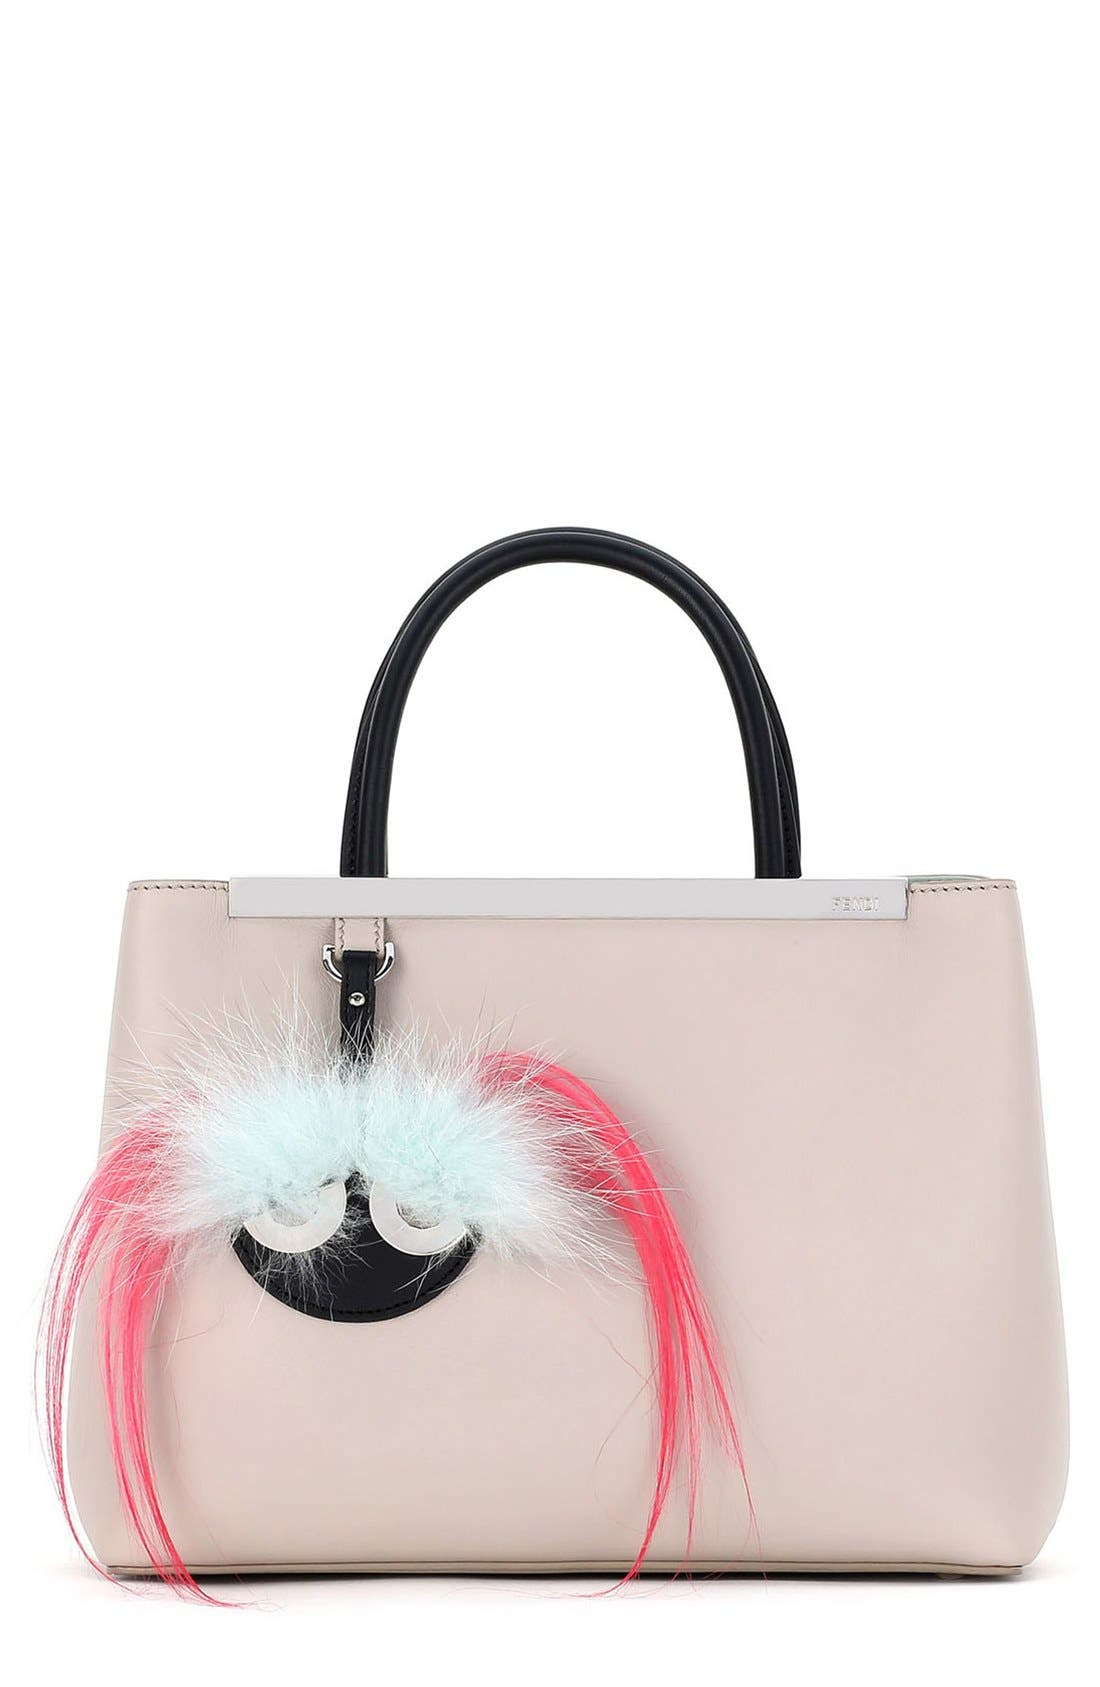 Alternate Image 1 Selected - Fendi 'Petite 2Jours' Bicolor Leather Shopper with Genuine Fox & Kidassia Fur Monster Charm